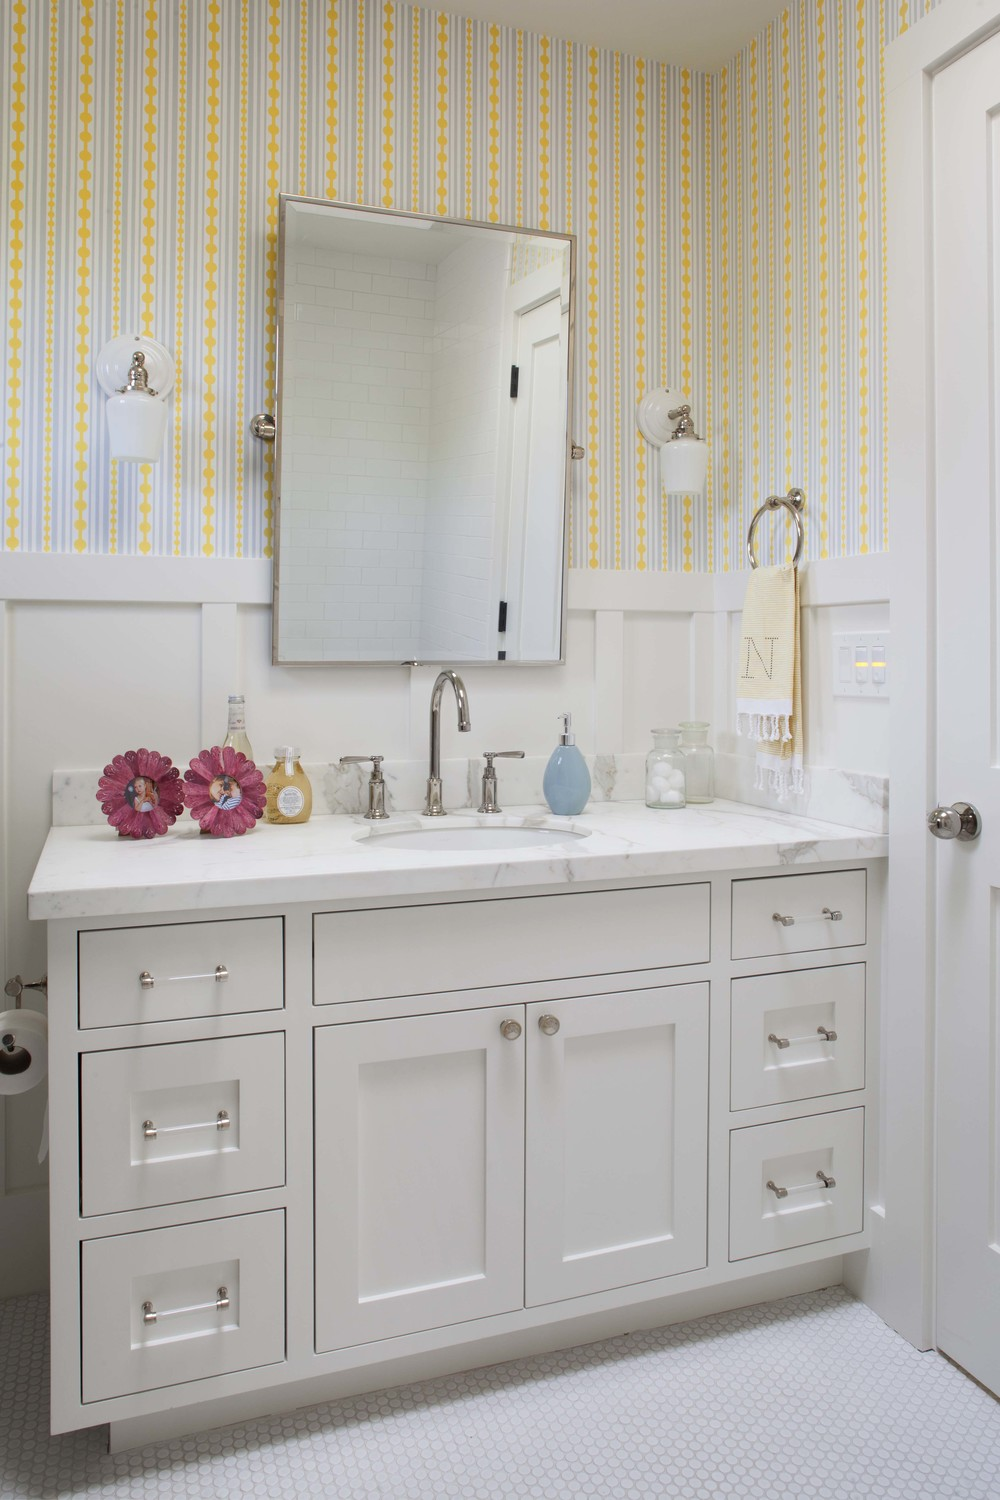 Modern Farmhouse: Baby bath